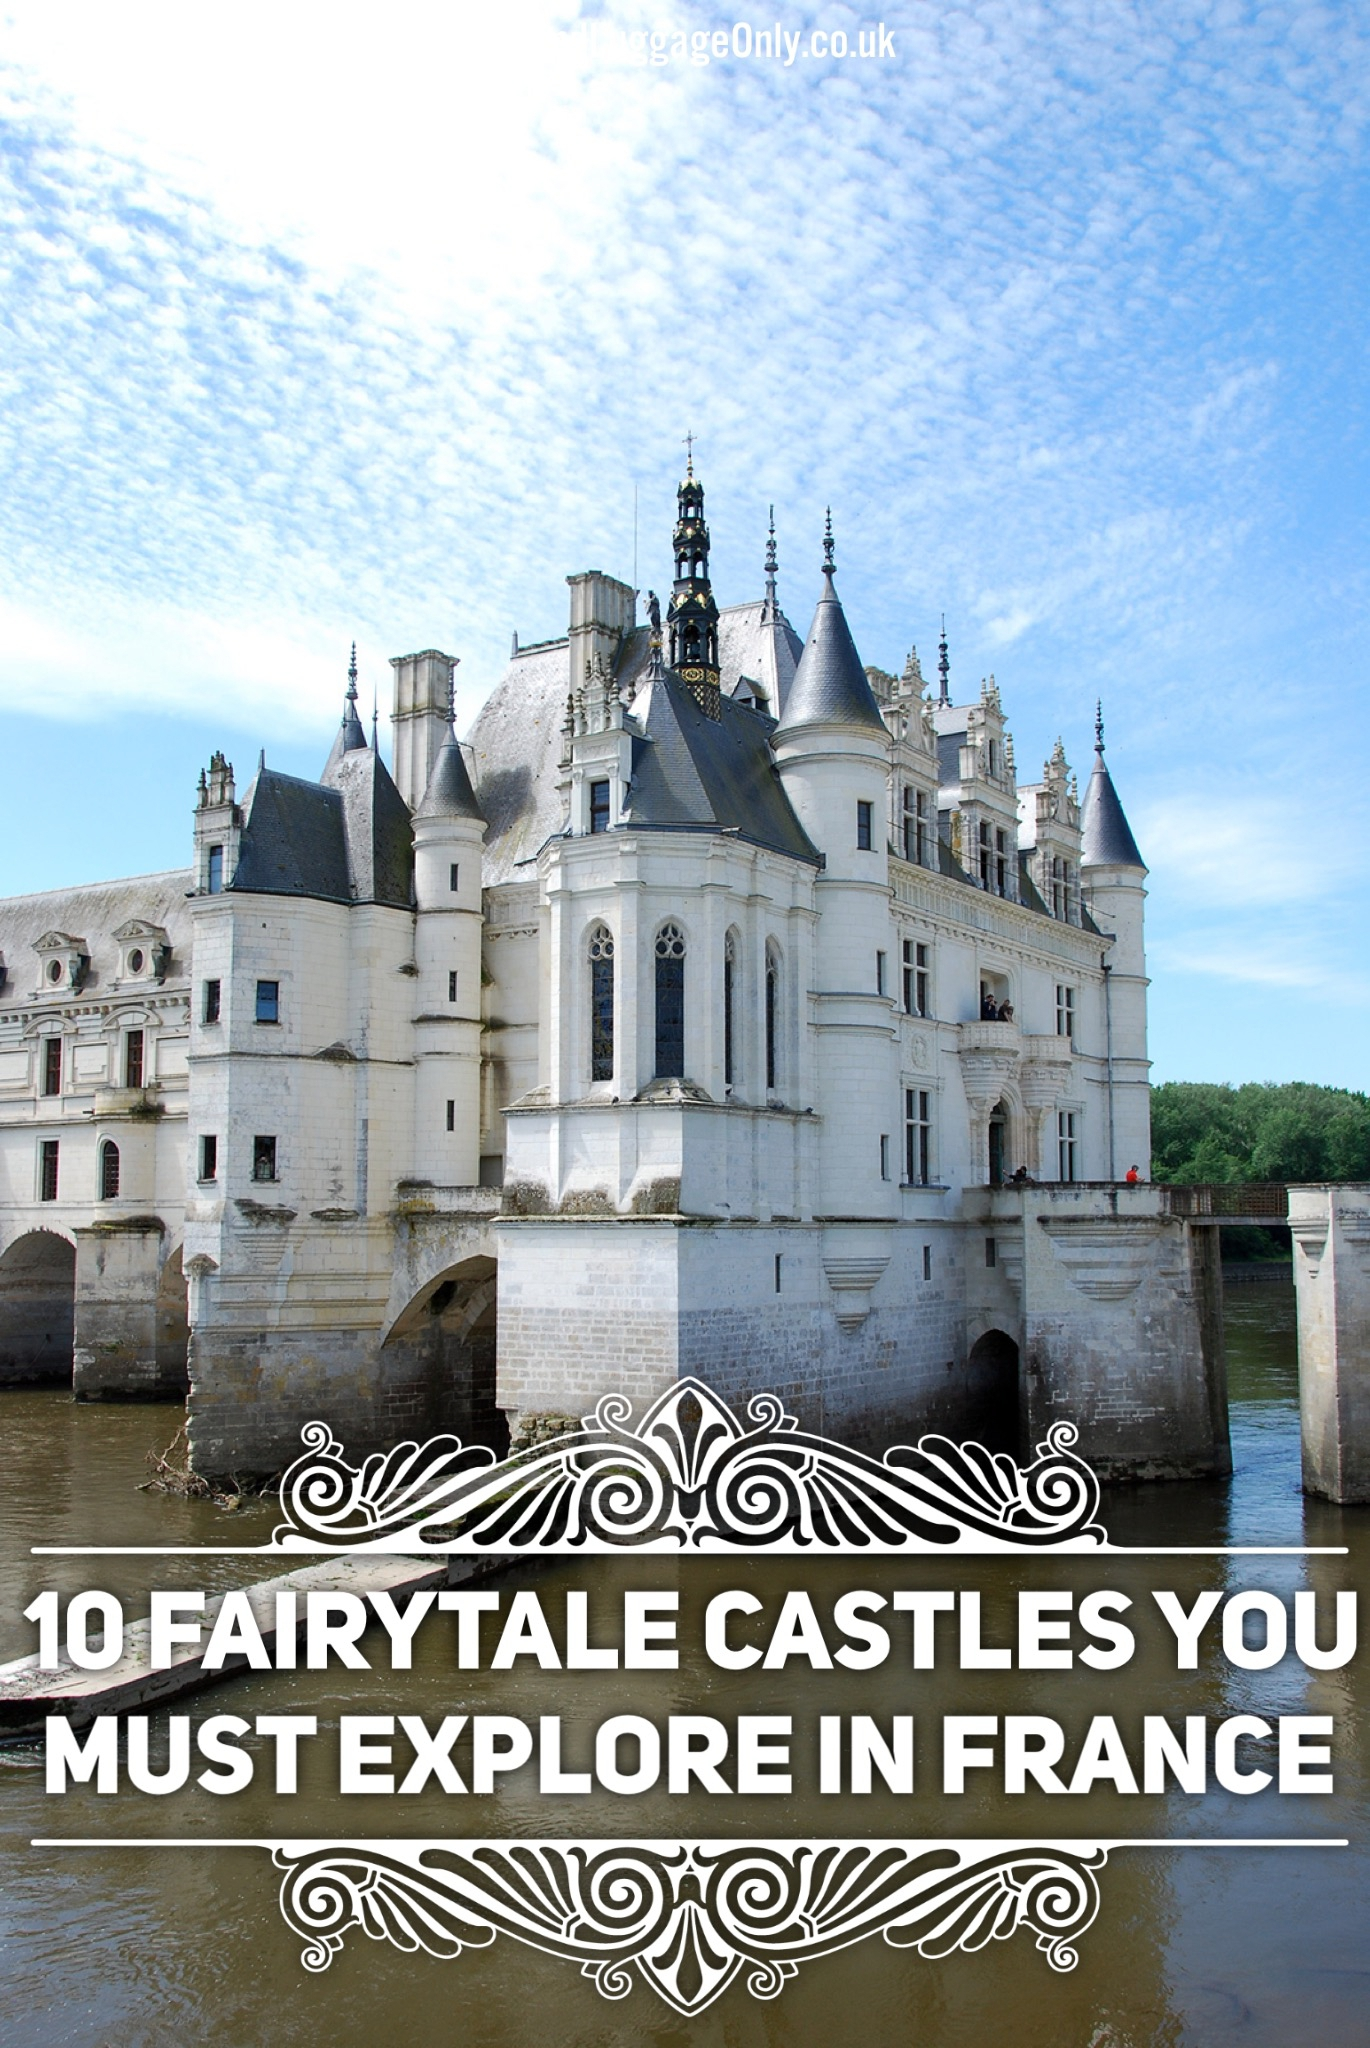 10 Fairytale Castles You Must Explore In France (2)